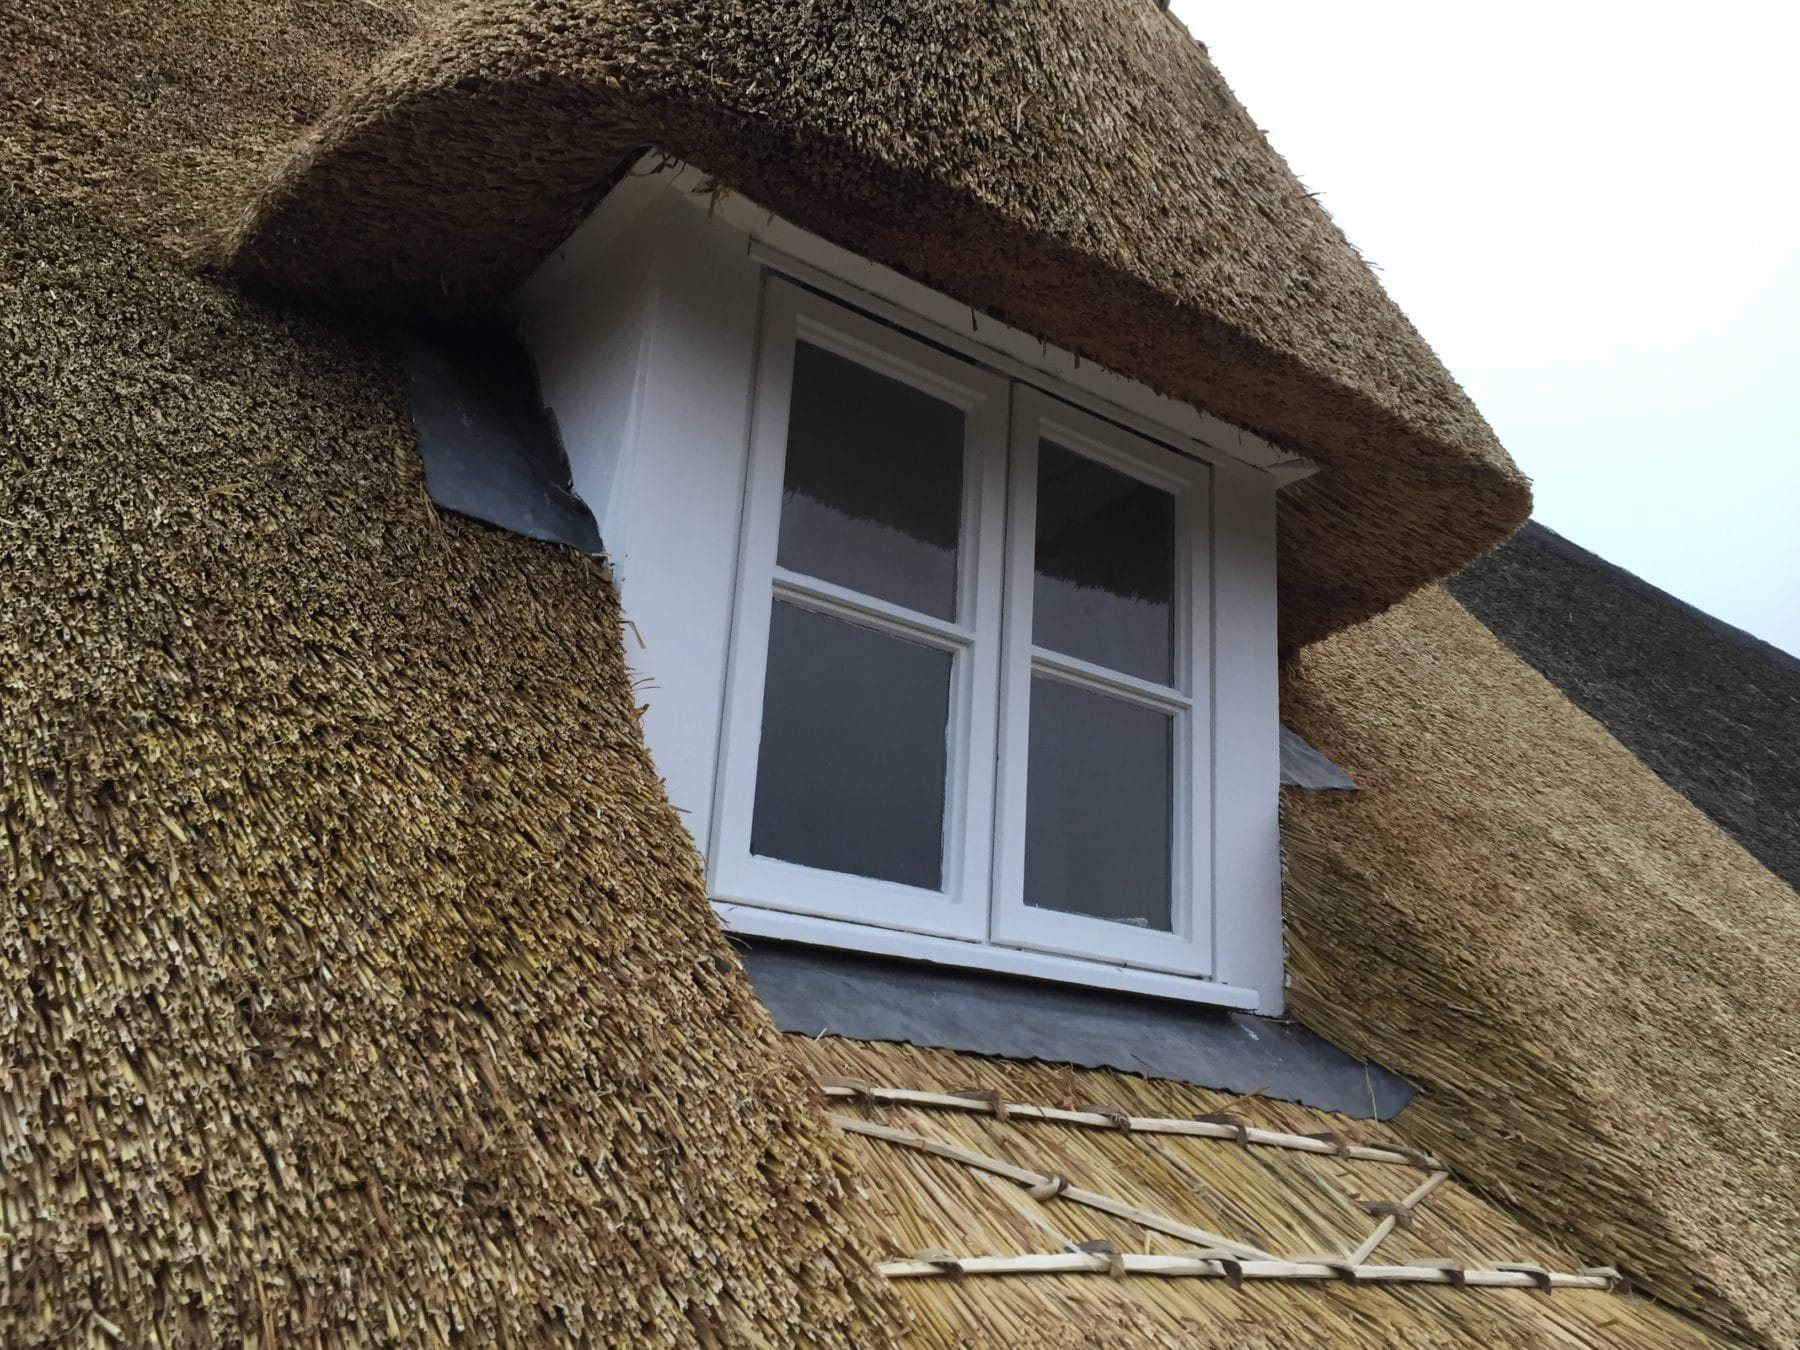 Thatched Roof with A Window View